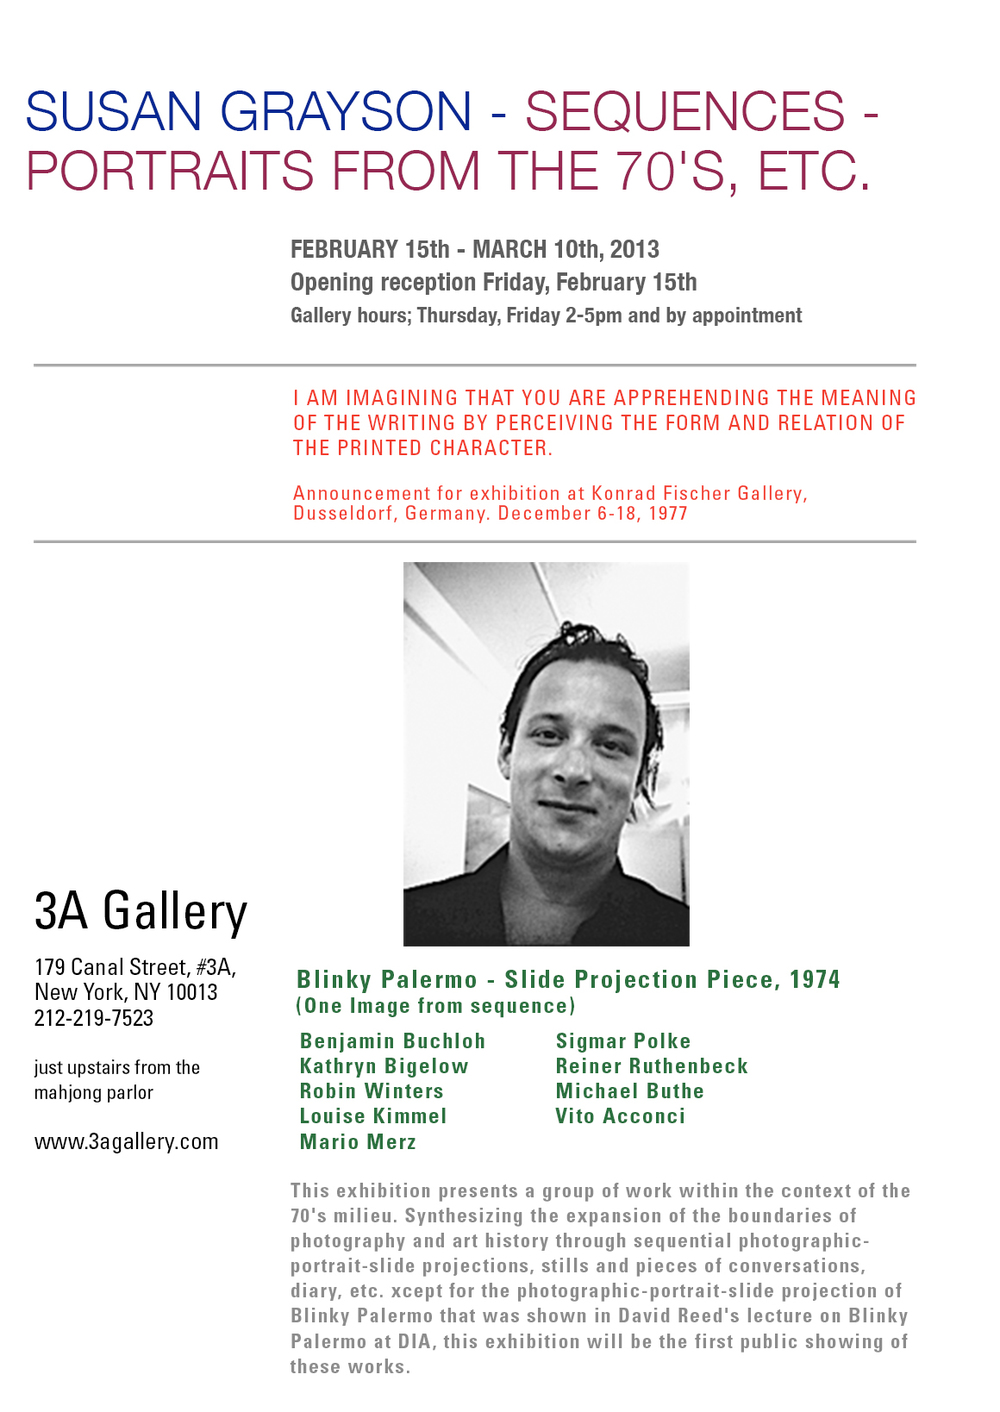 "Robin Winters (Art Practice Faculty) is included in 3A Gallery's current exhibition ""Sequences- Portraits from the 70's, Etc."" The show runs through March 10th."